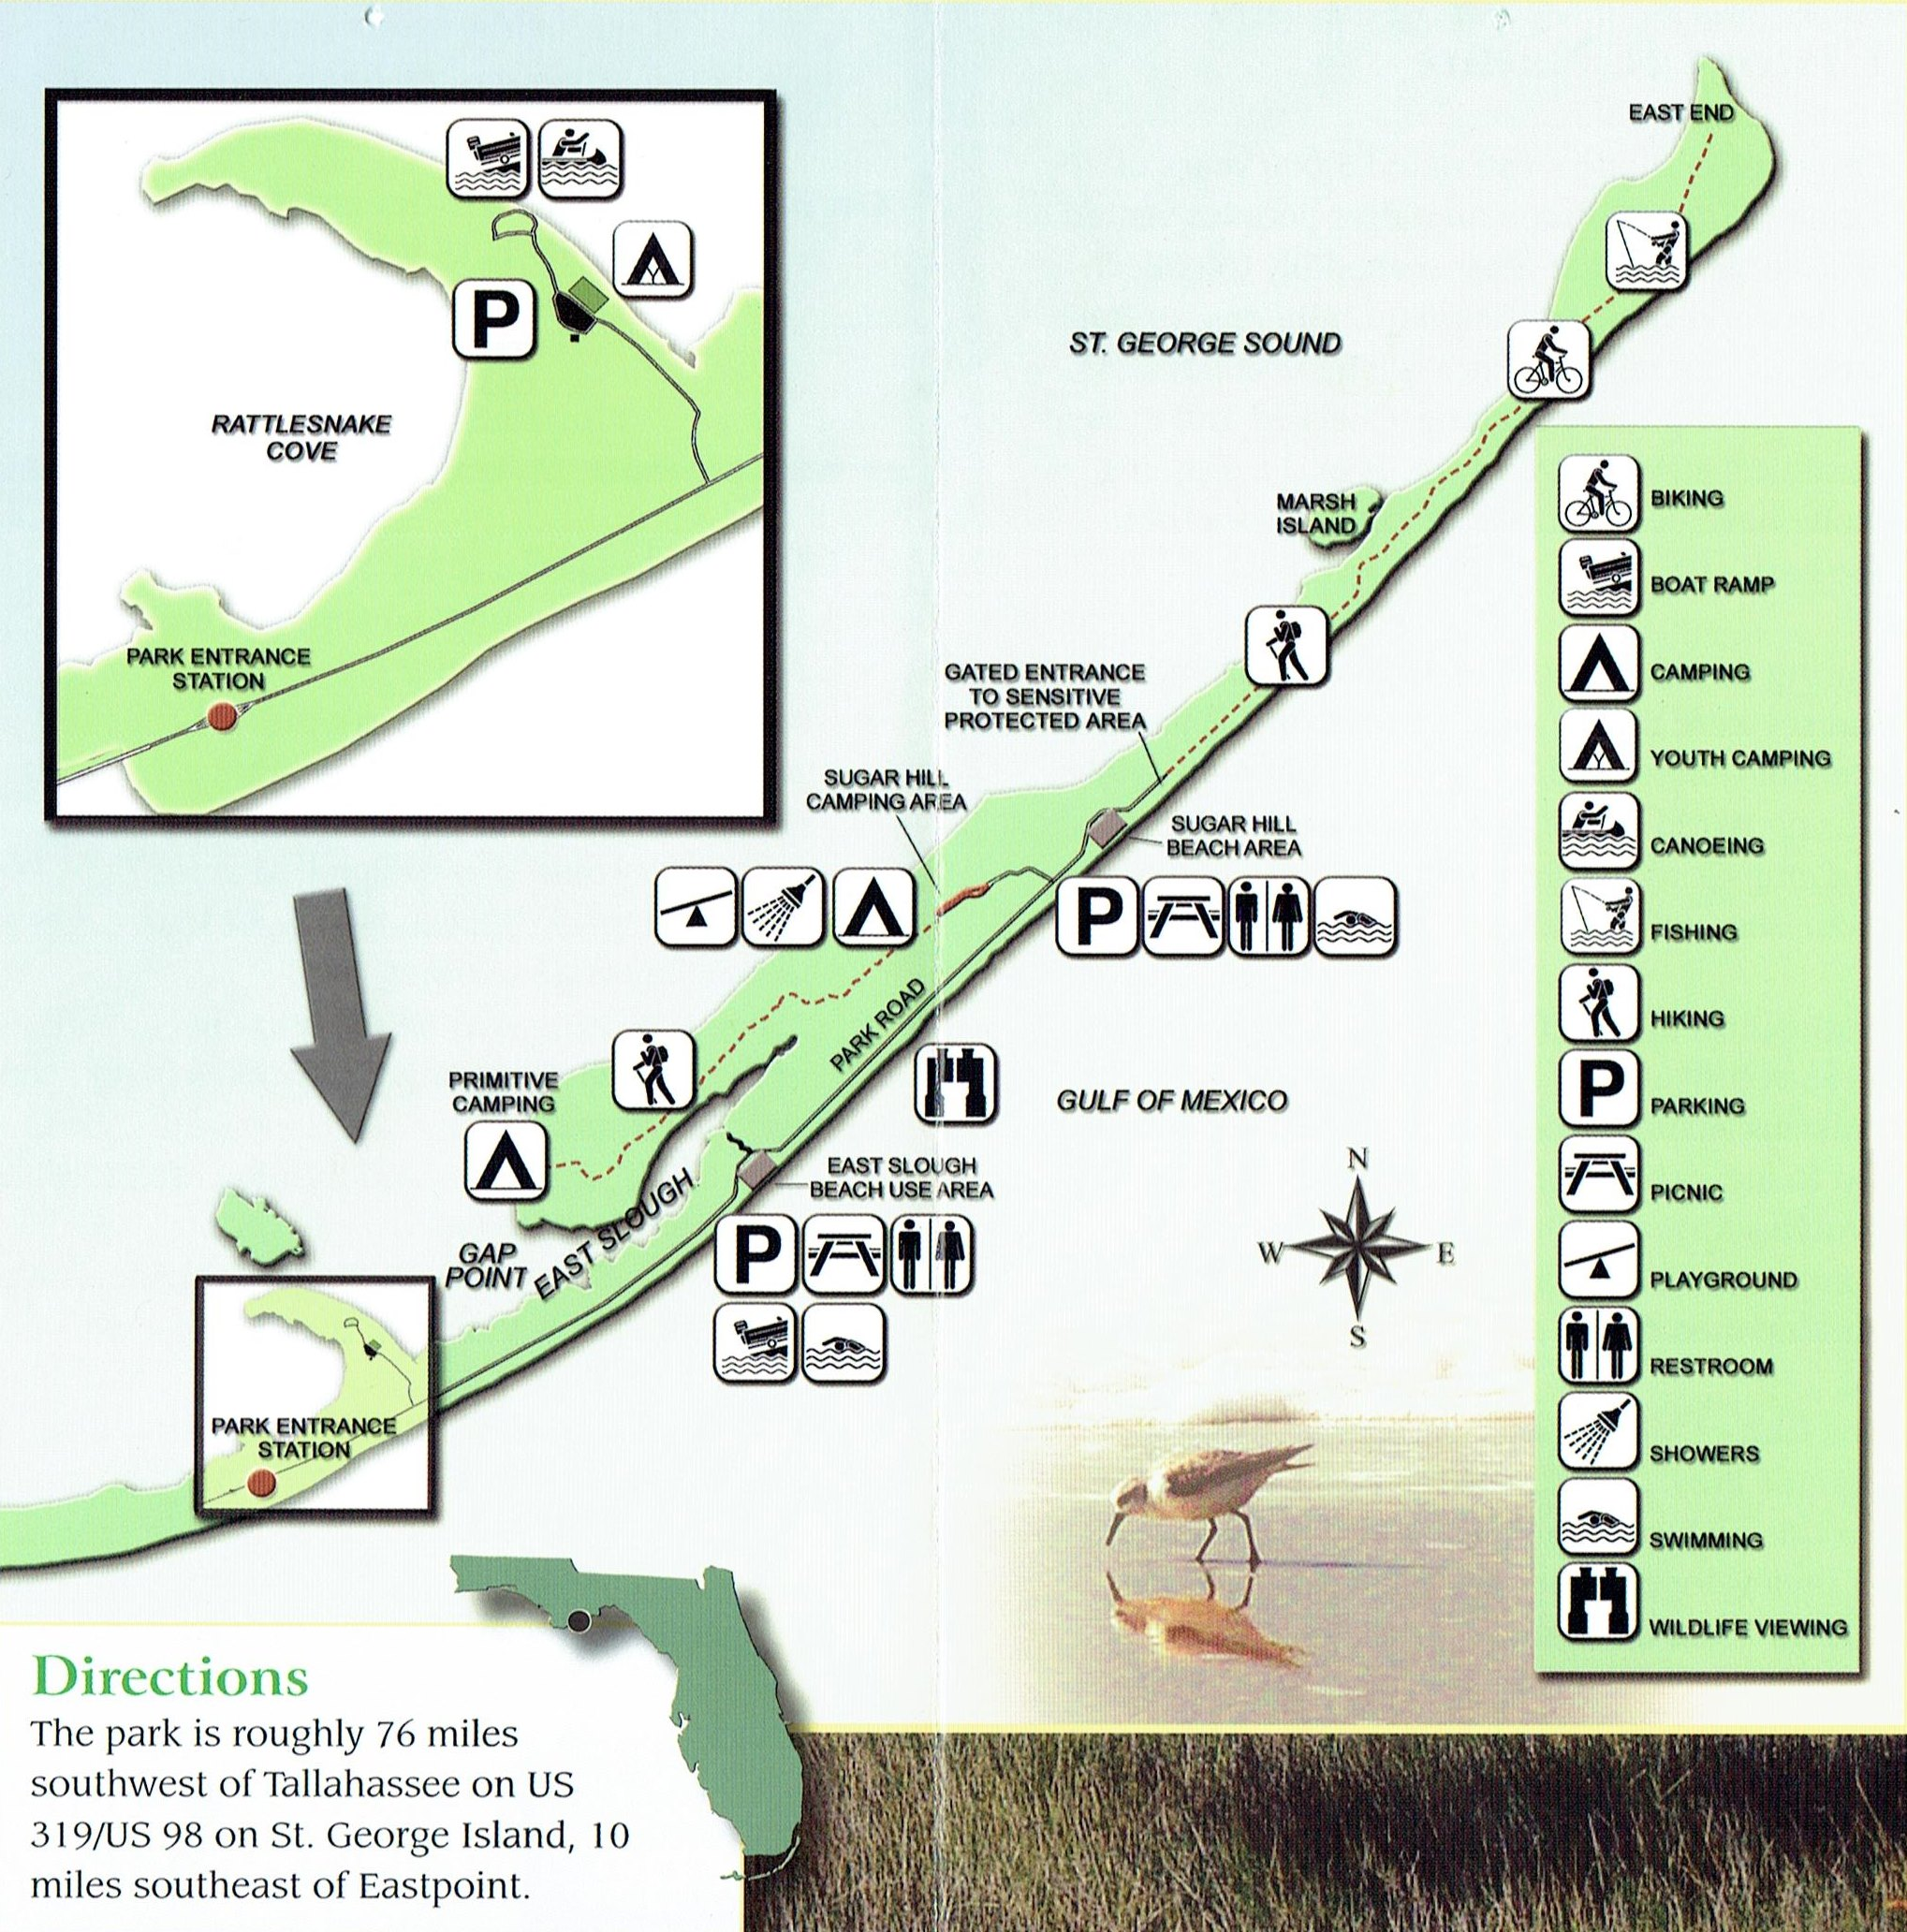 Florida State Parks Camping Map.Dr Julian G Bruce St George Island State Park Camping Places